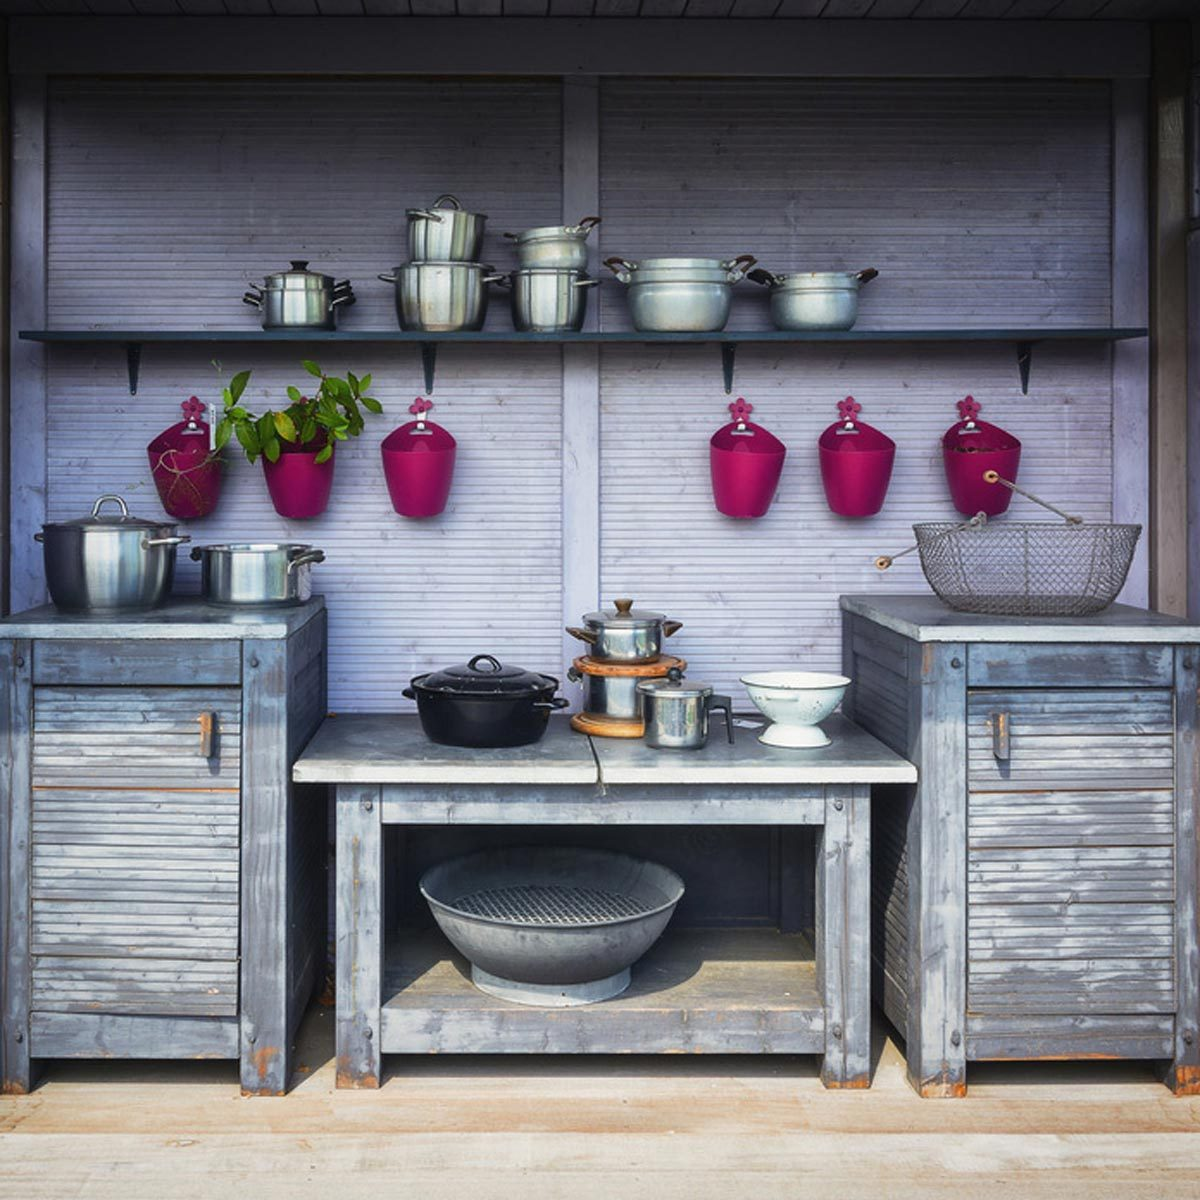 Cool Shed Ideas: The Cook's Nook